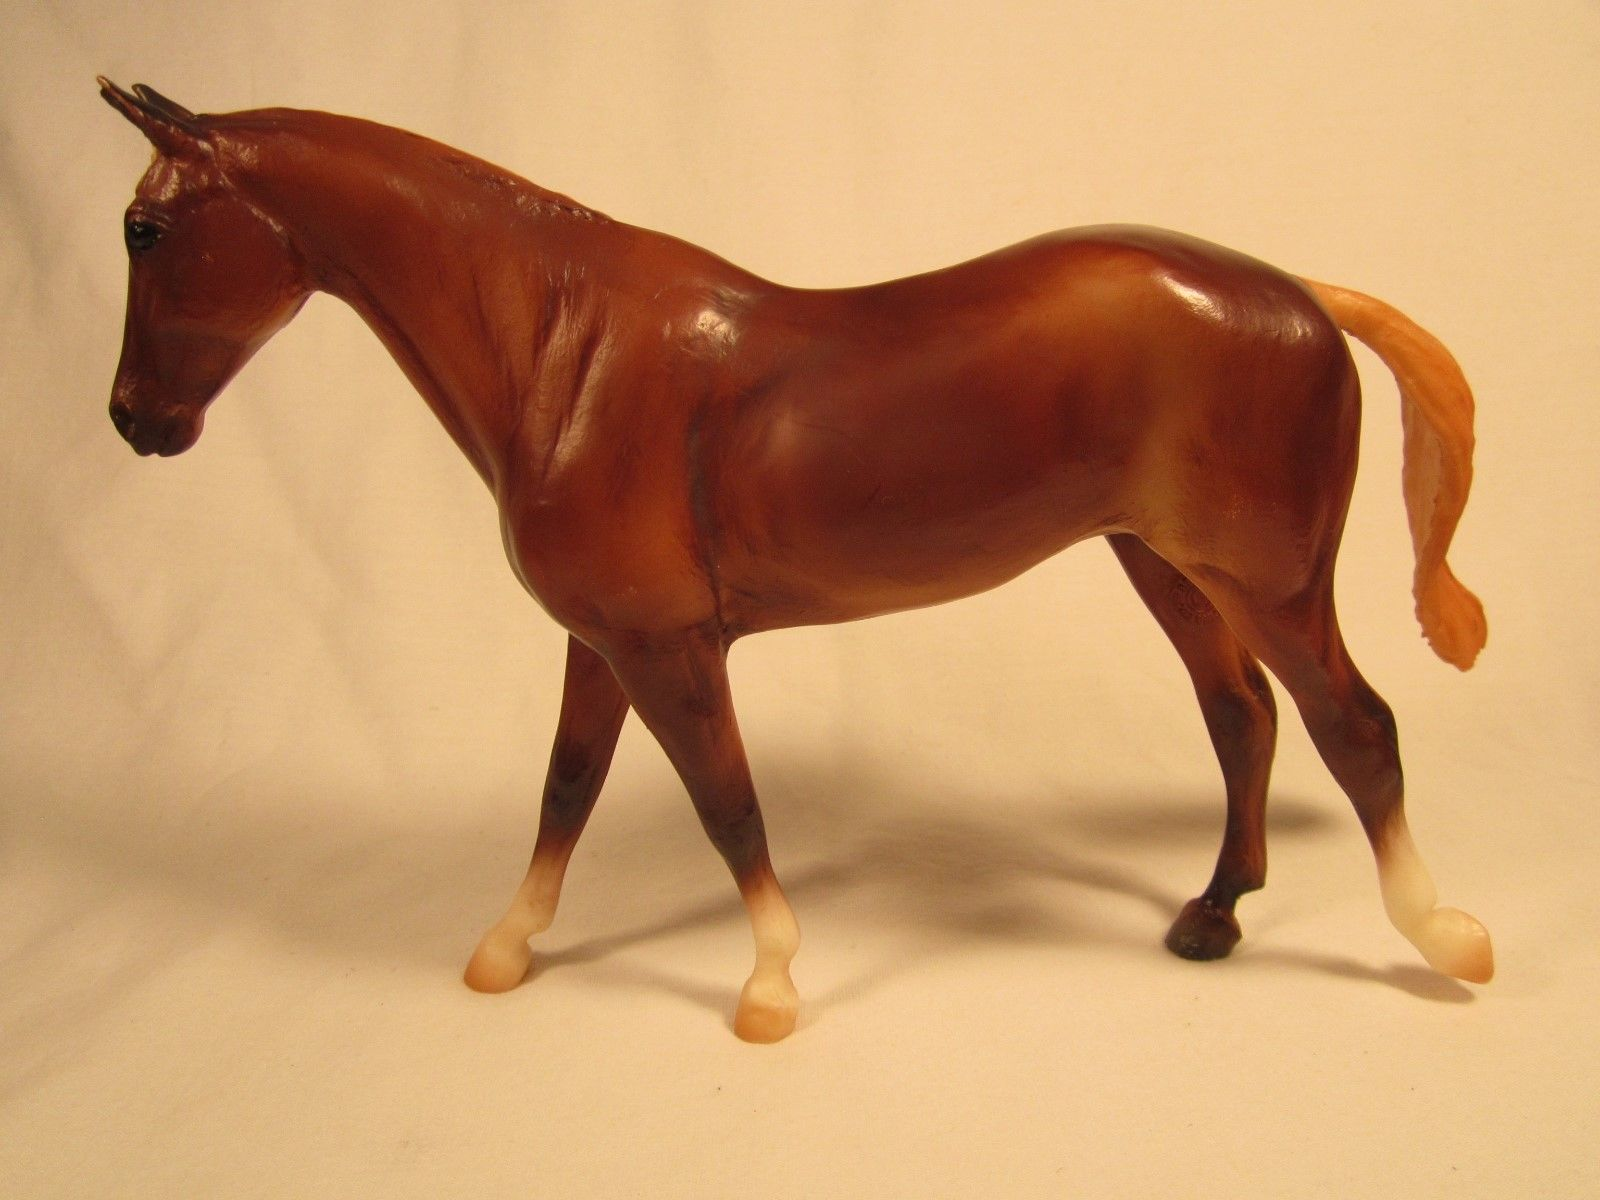 Primary image for BREYER MOLDING Classic Mold #3035MT MIGHT TANGO Model 61058 Chestnut [Z212q]